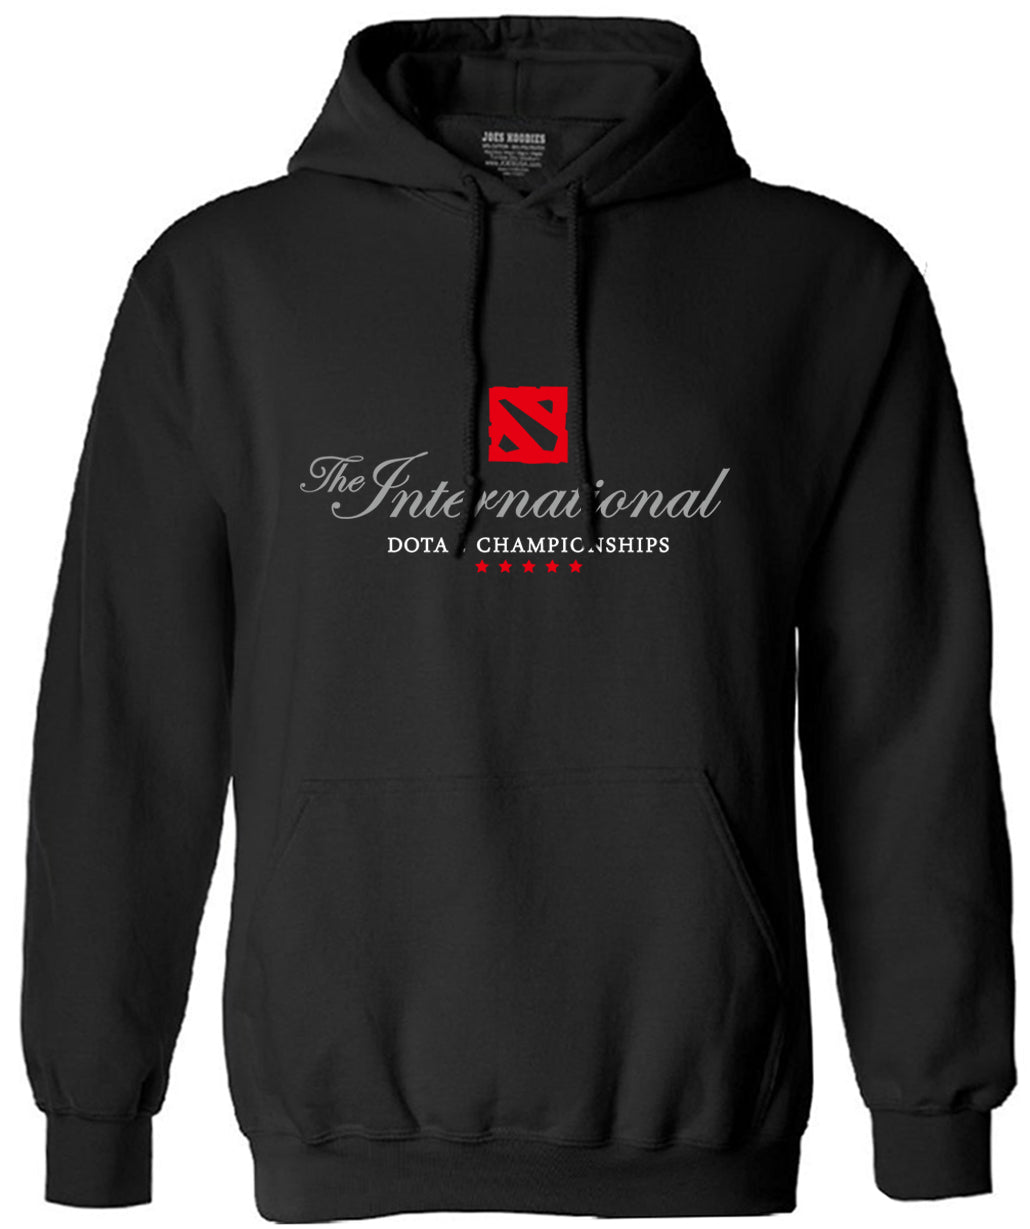 Game Dota Print Sweatshirt for Men